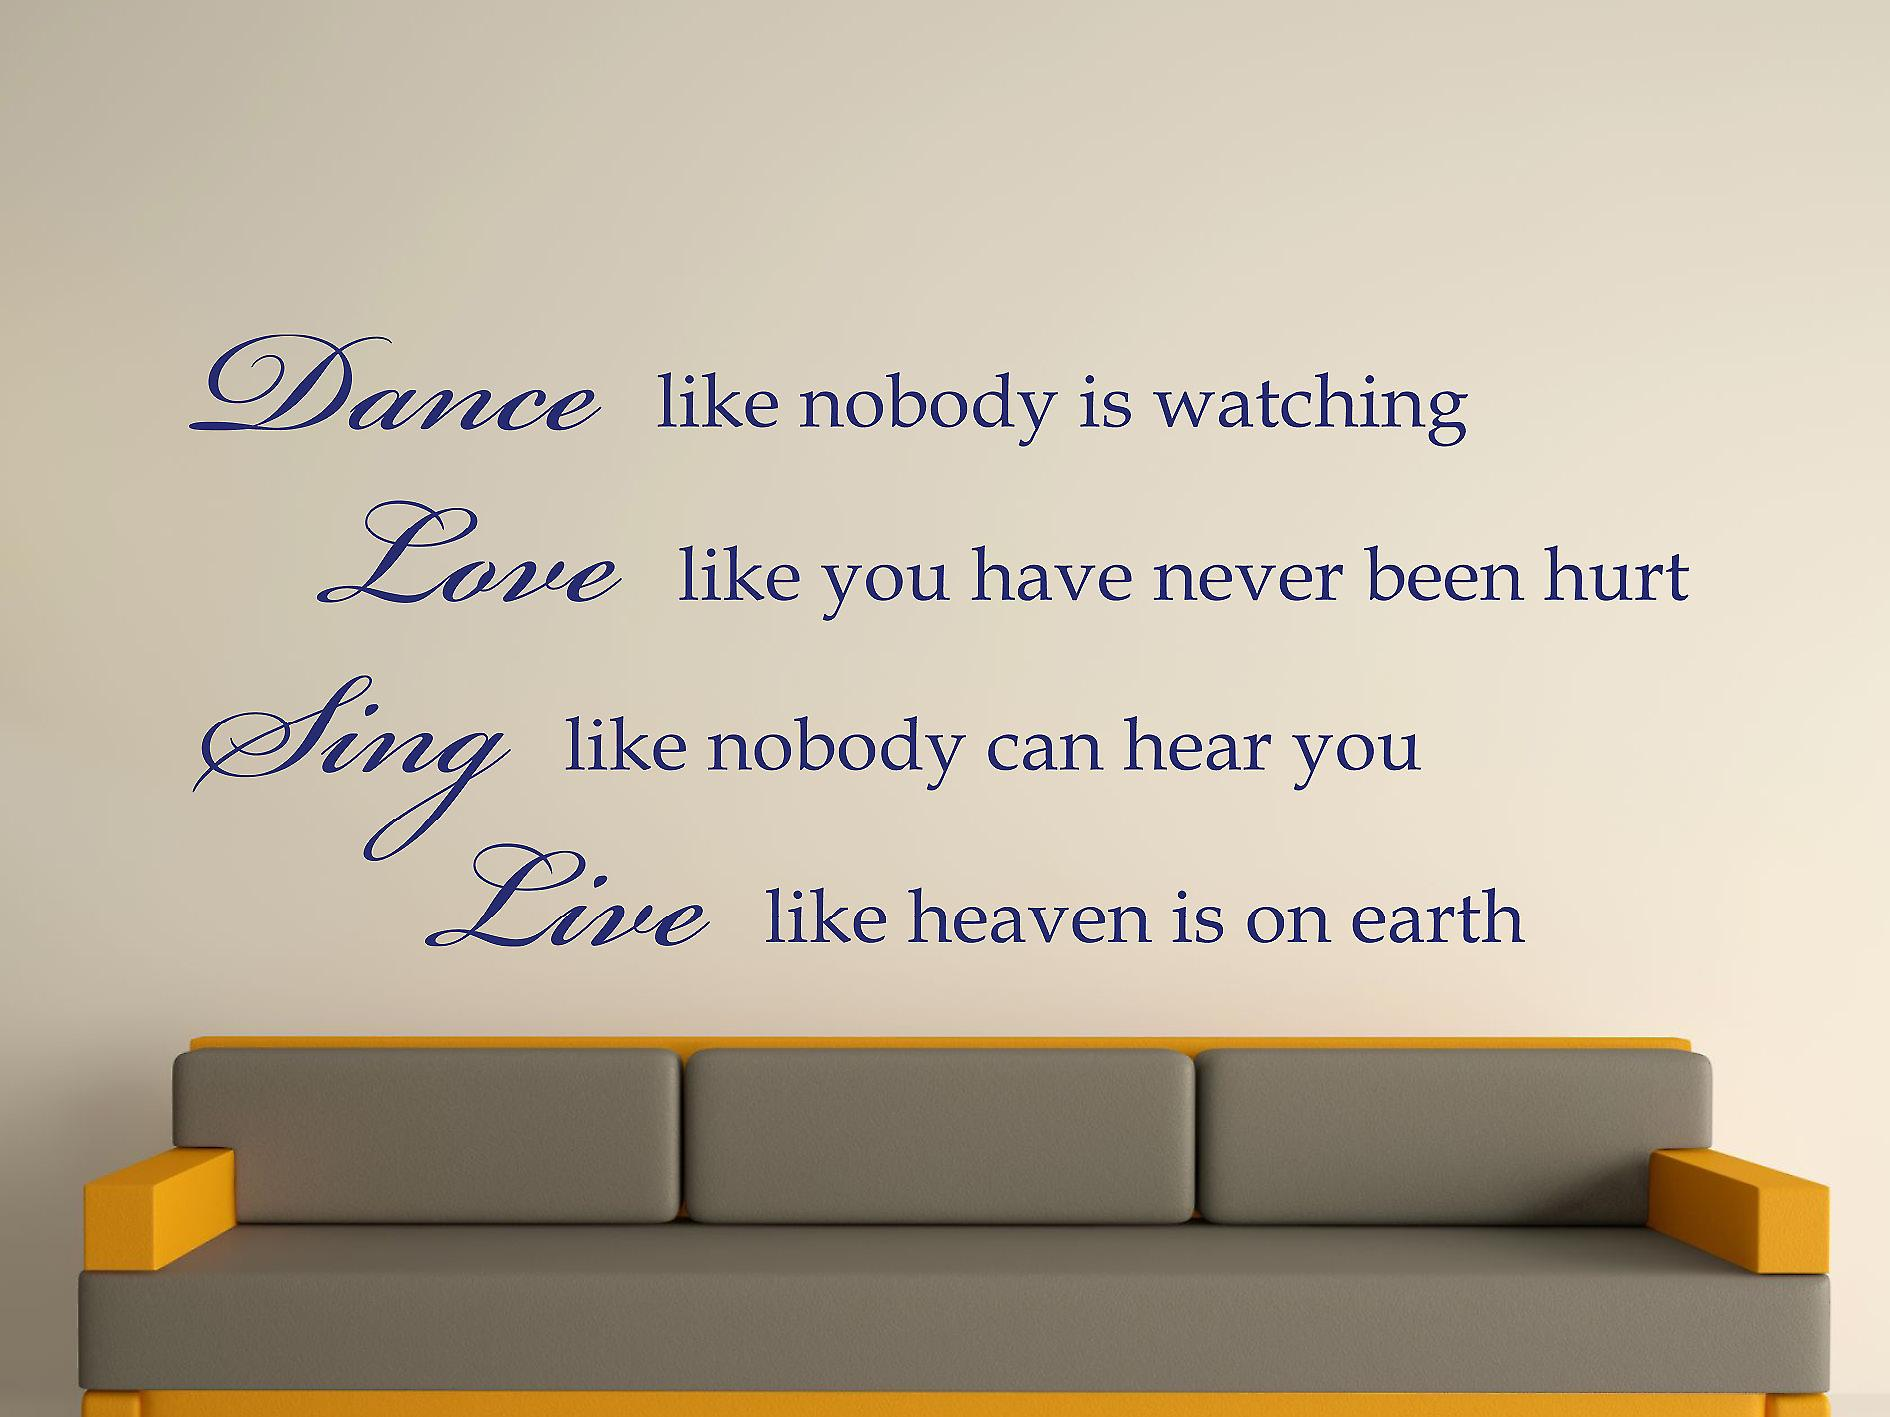 Dance Like Nobody Is Watching Wall Art Sticker - Ultra Blue